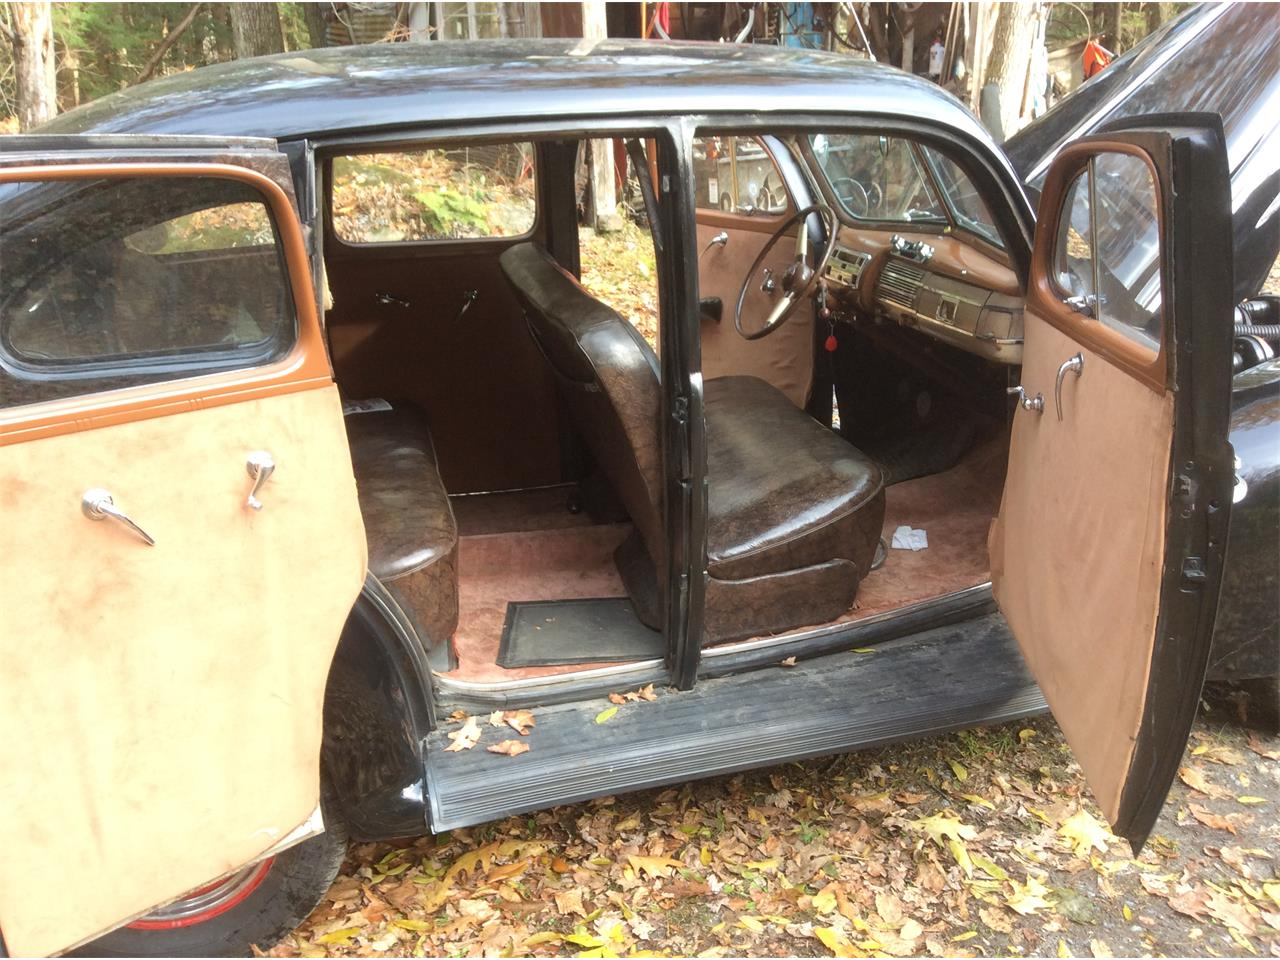 Large Picture of 1940 Ford Sedan Limo - $21,000.00 Offered by a Private Seller - OHQS